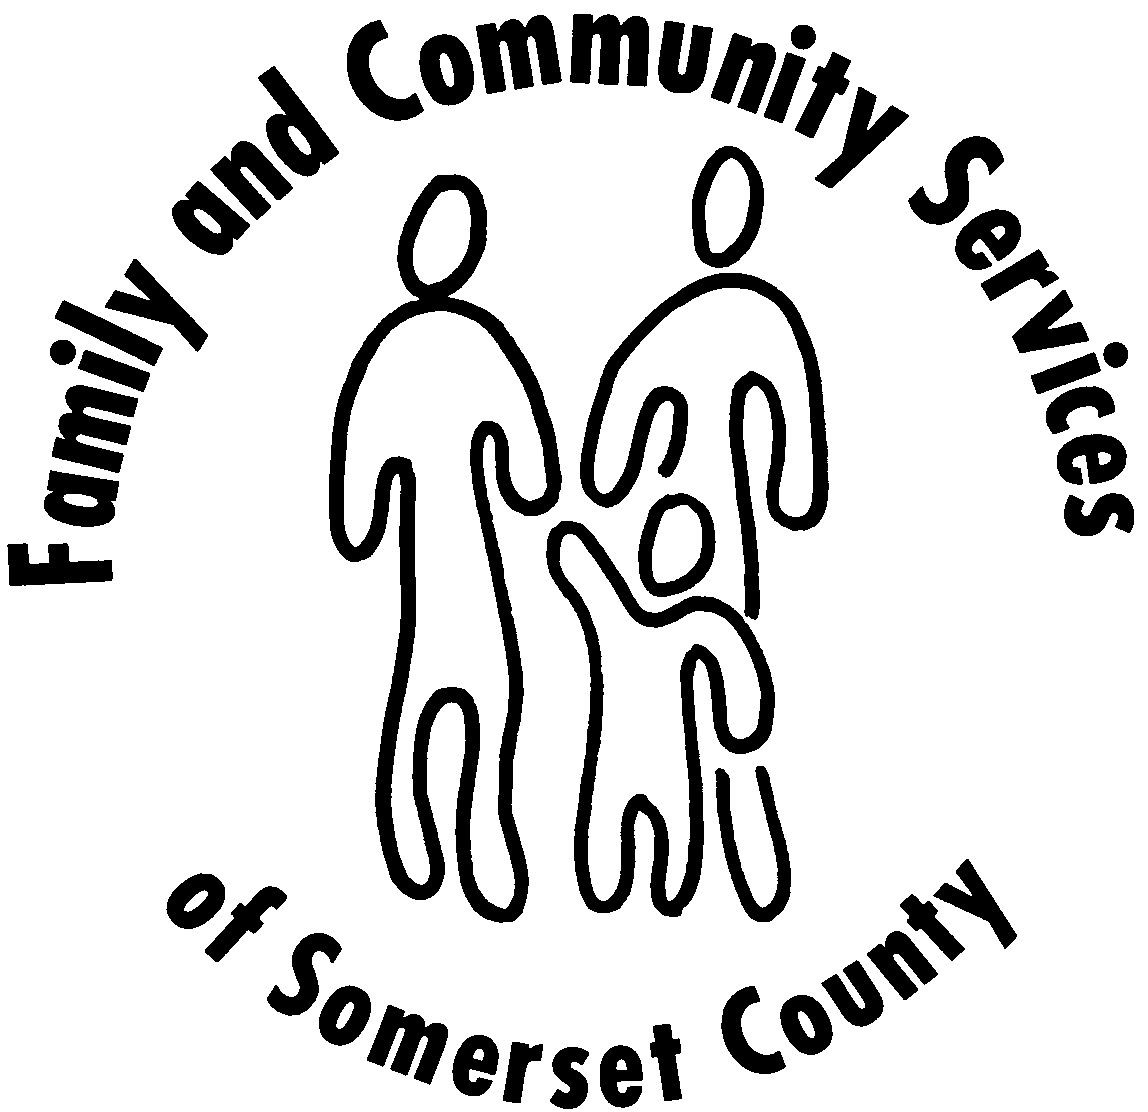 Family and Community Services of Somerset County Home